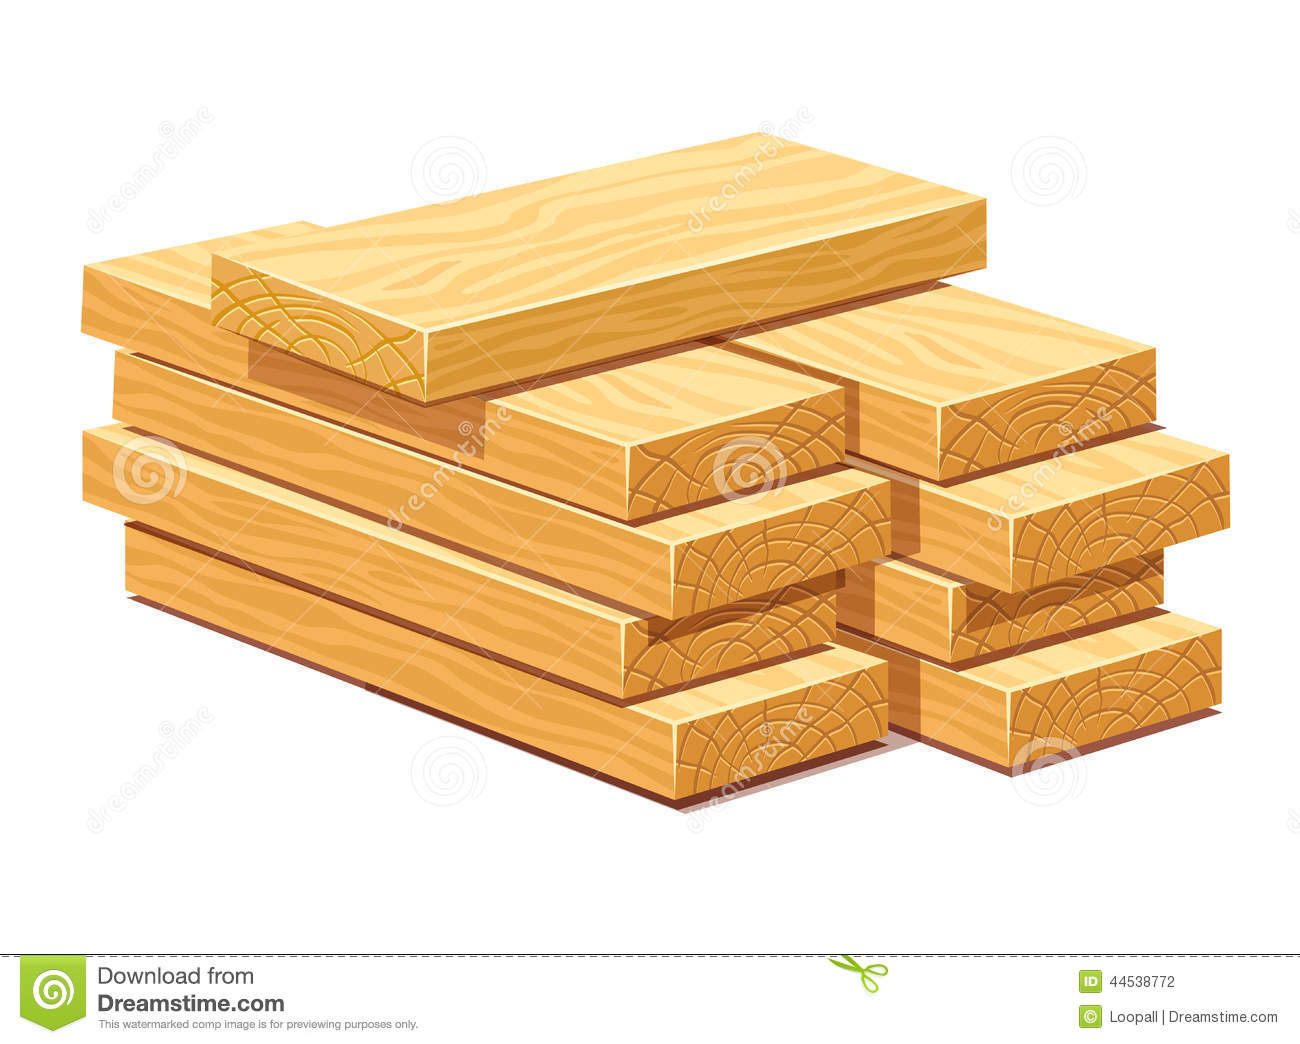 Wooden Plank Cartoon ~ Pile of wooden timber planks stock illustration